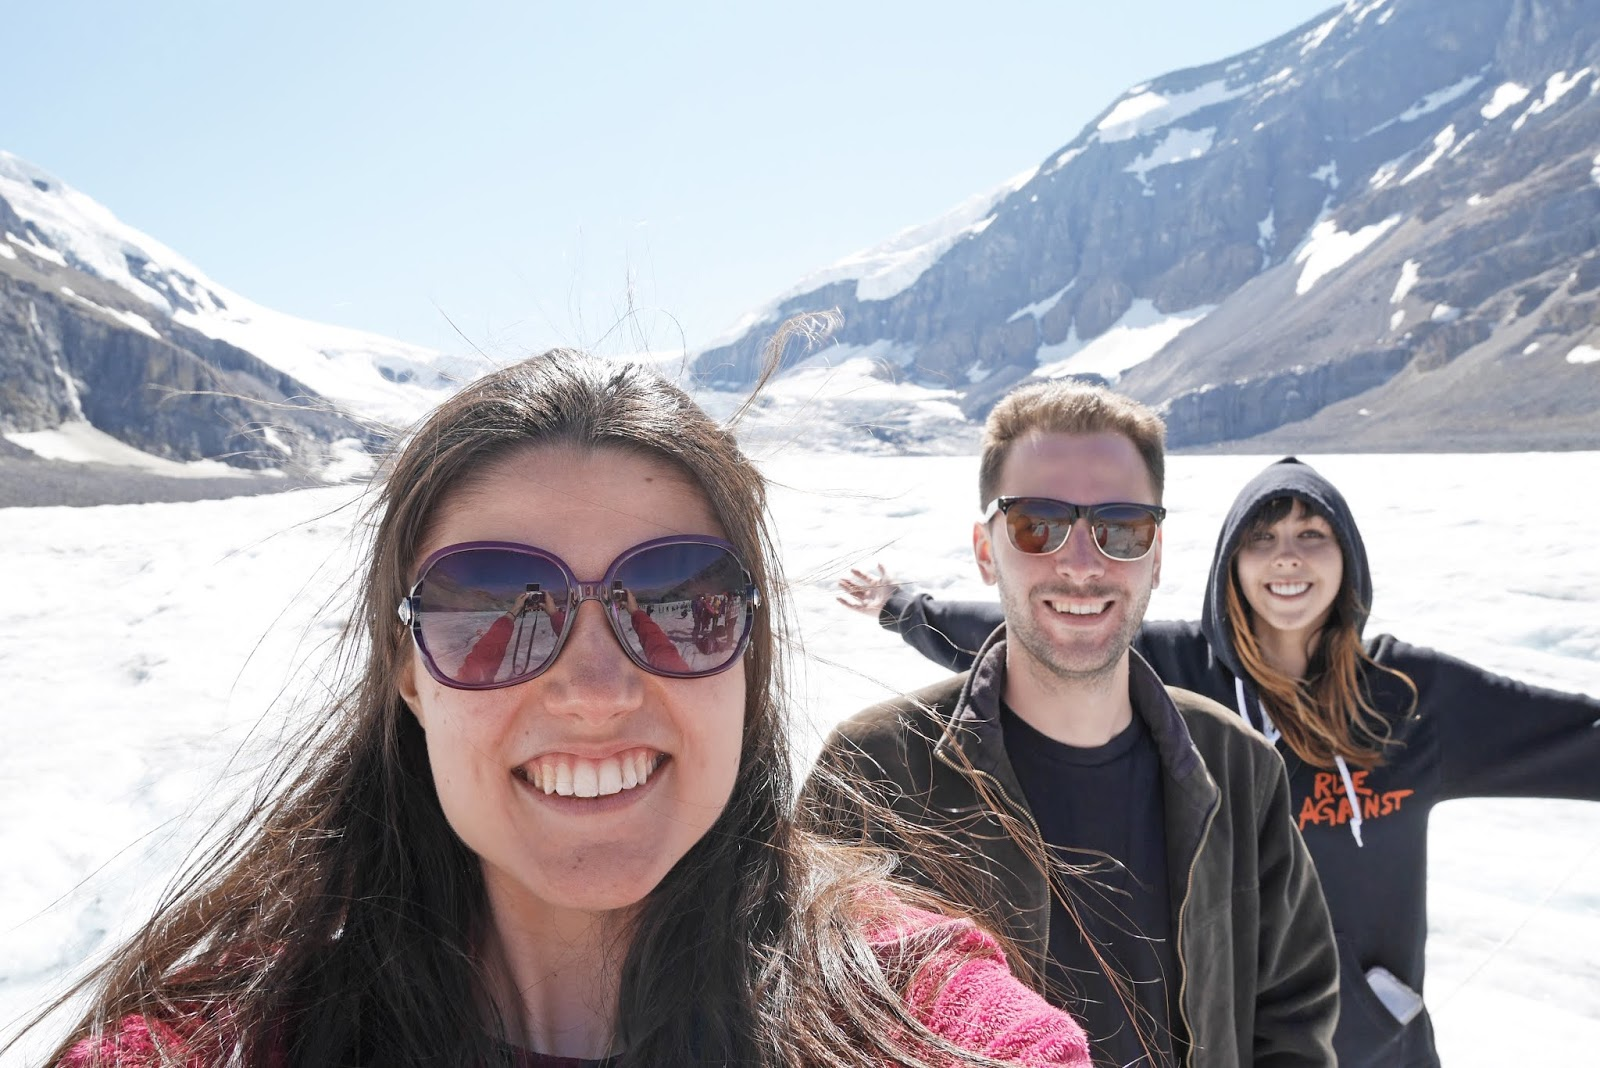 Columbia Icefield Glacier Adventure in Jasper National Park, Canada